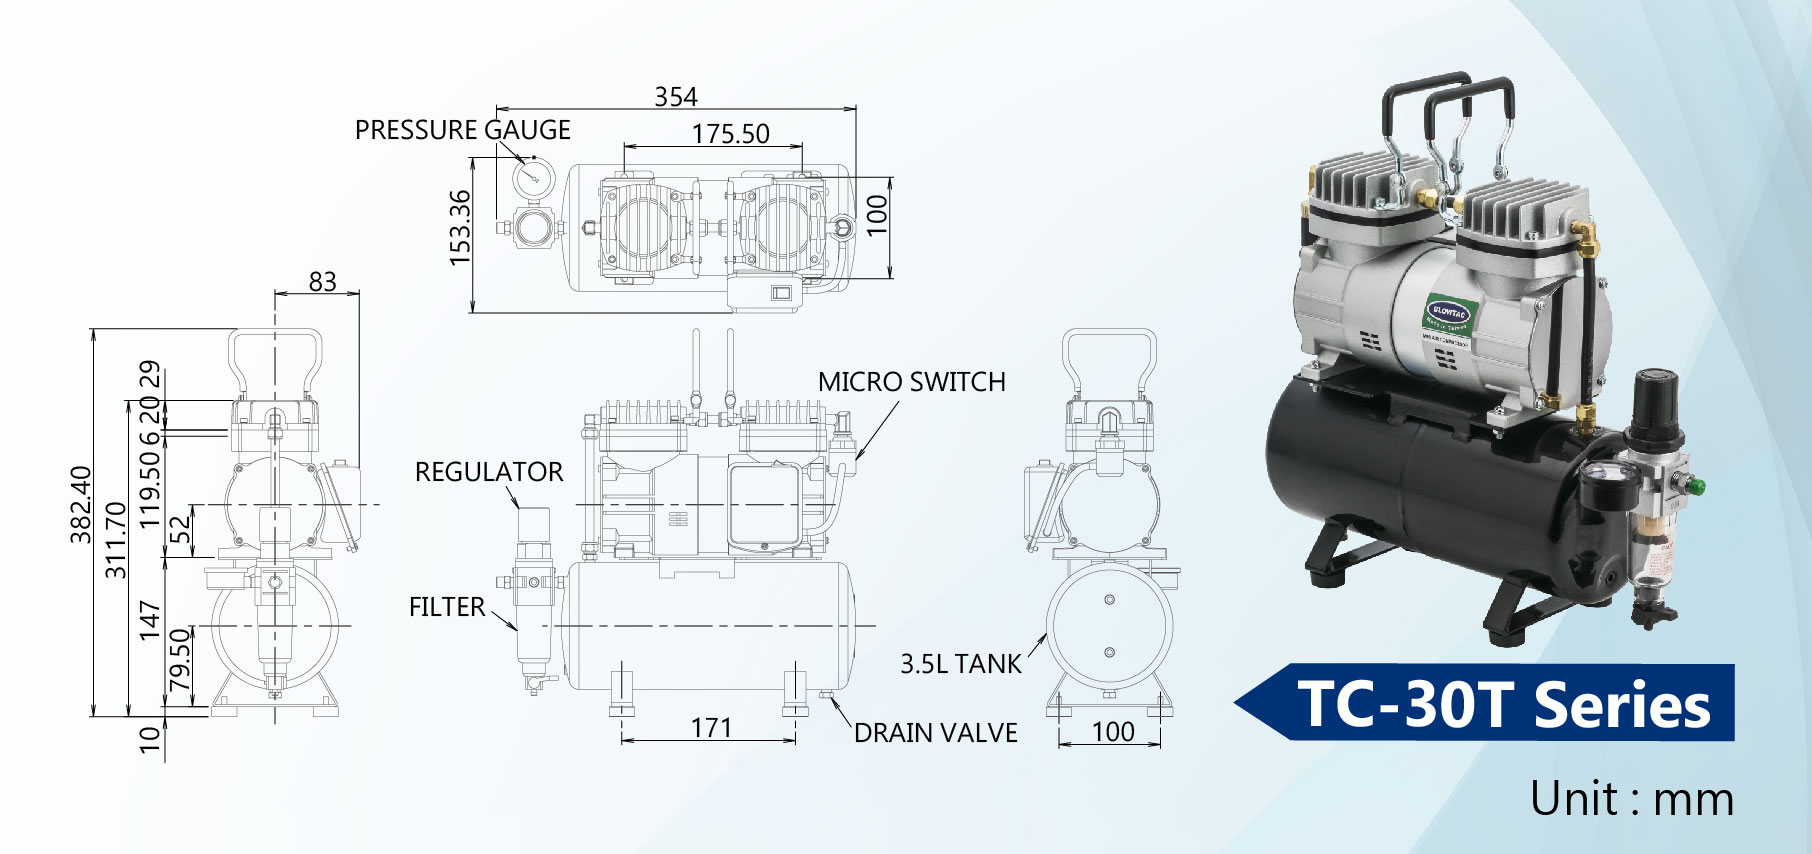 TC-30T Series Mini Air Compressors Dimension